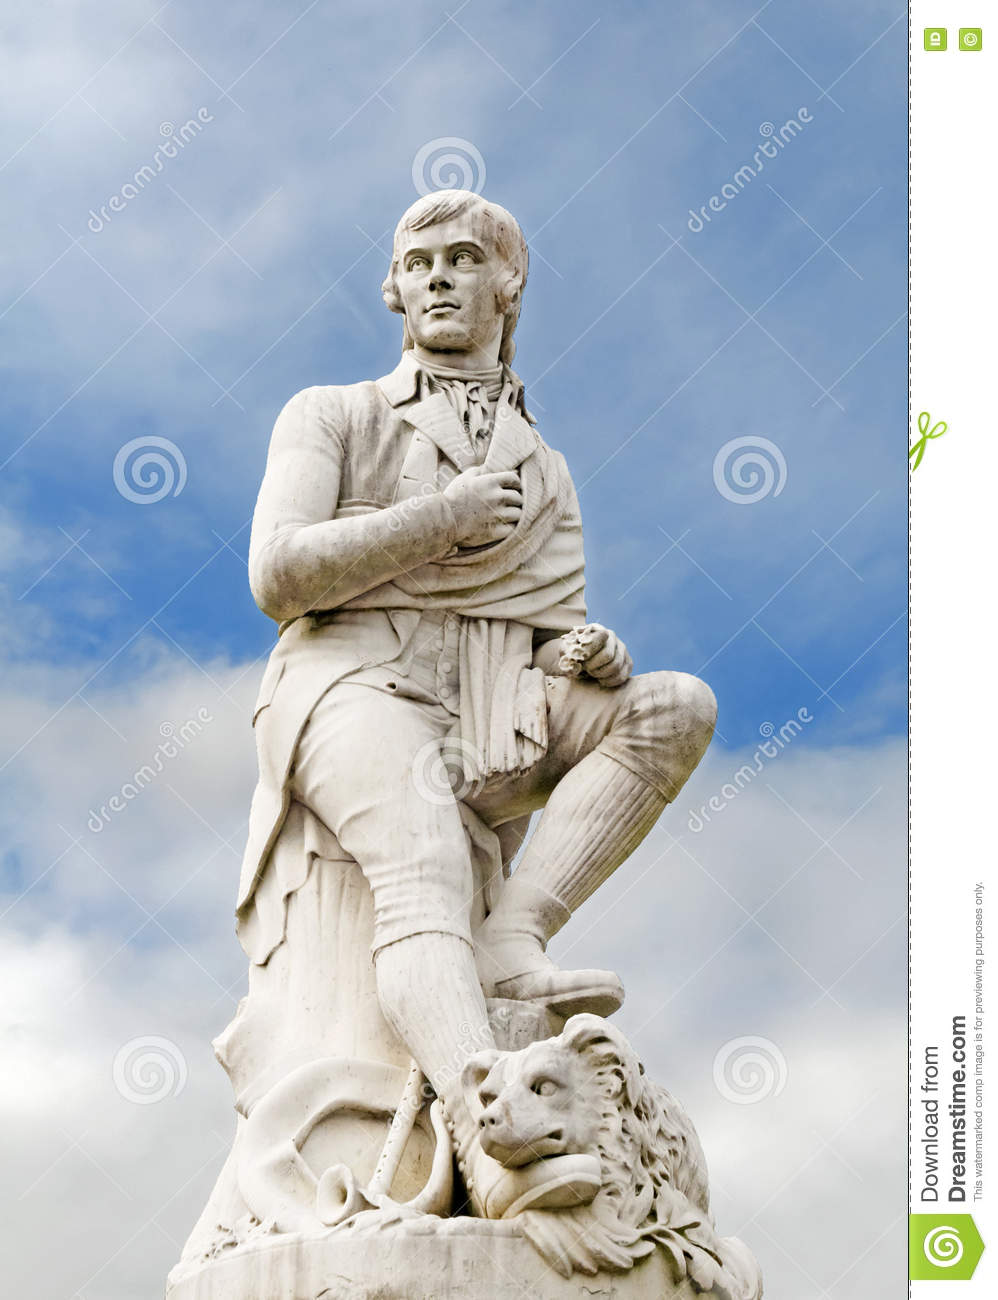 Robert Burns - statue, Dumfries